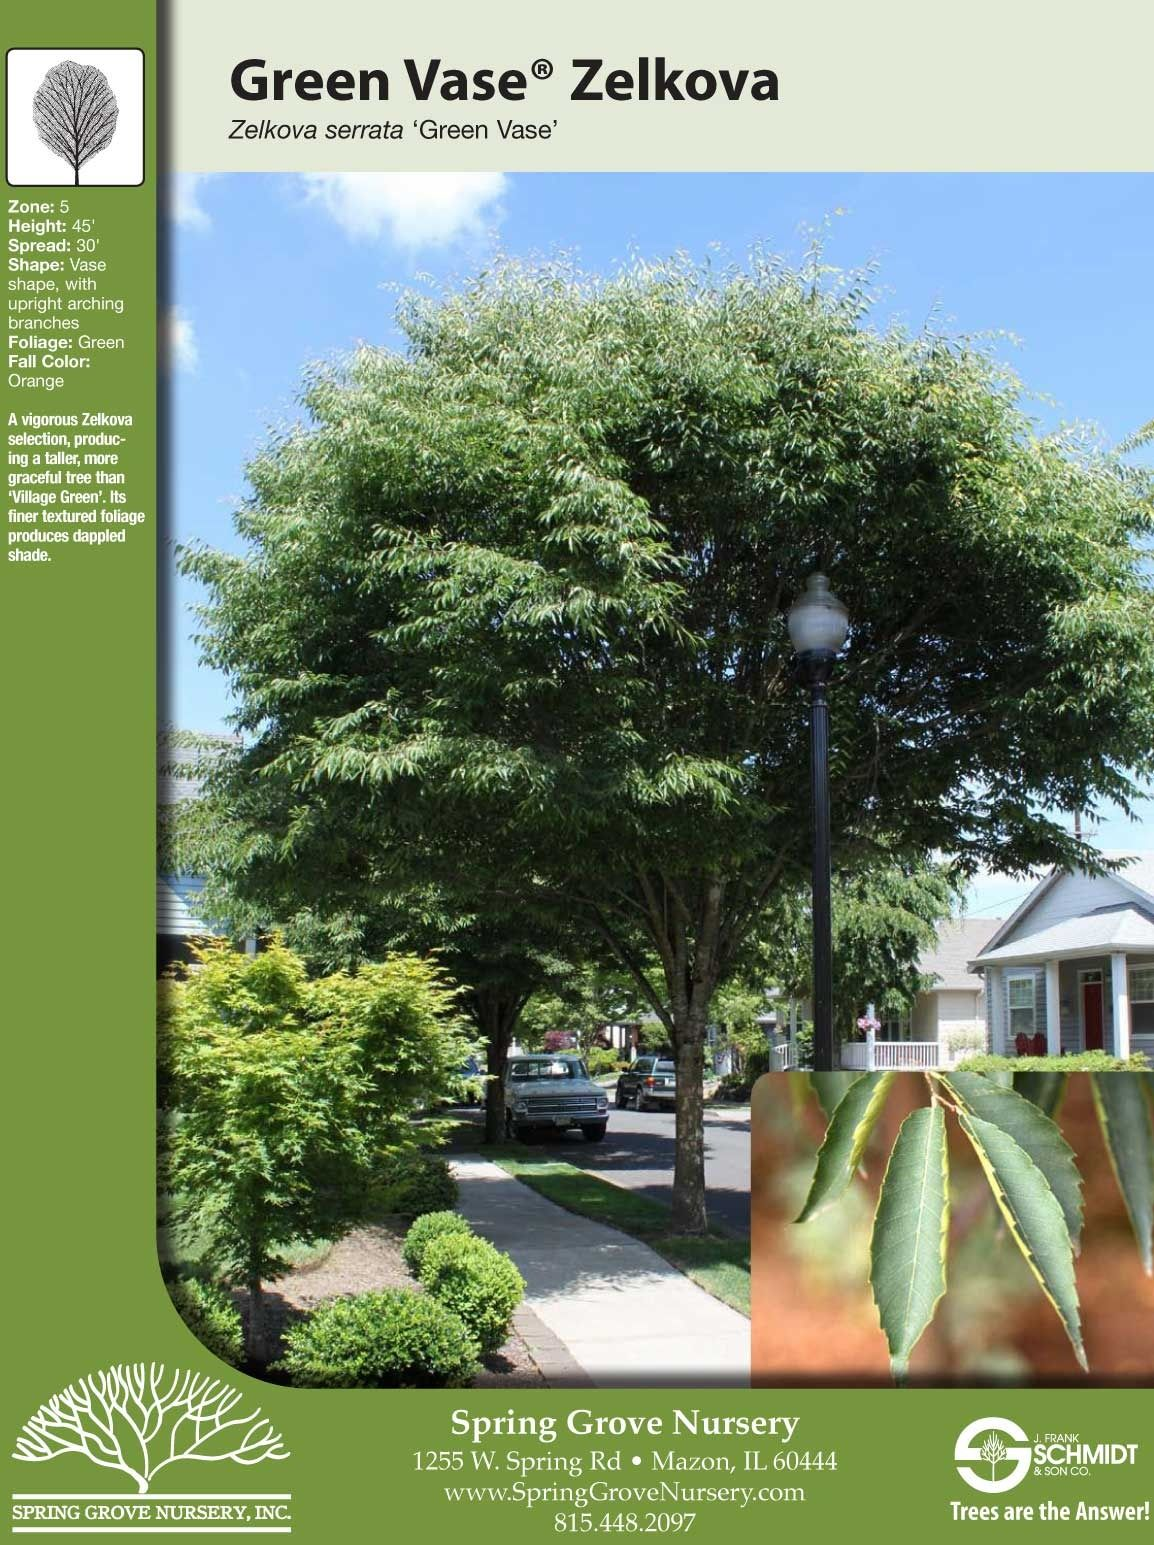 Green Vase Zelkova Tree Facts Landscaping Images Green